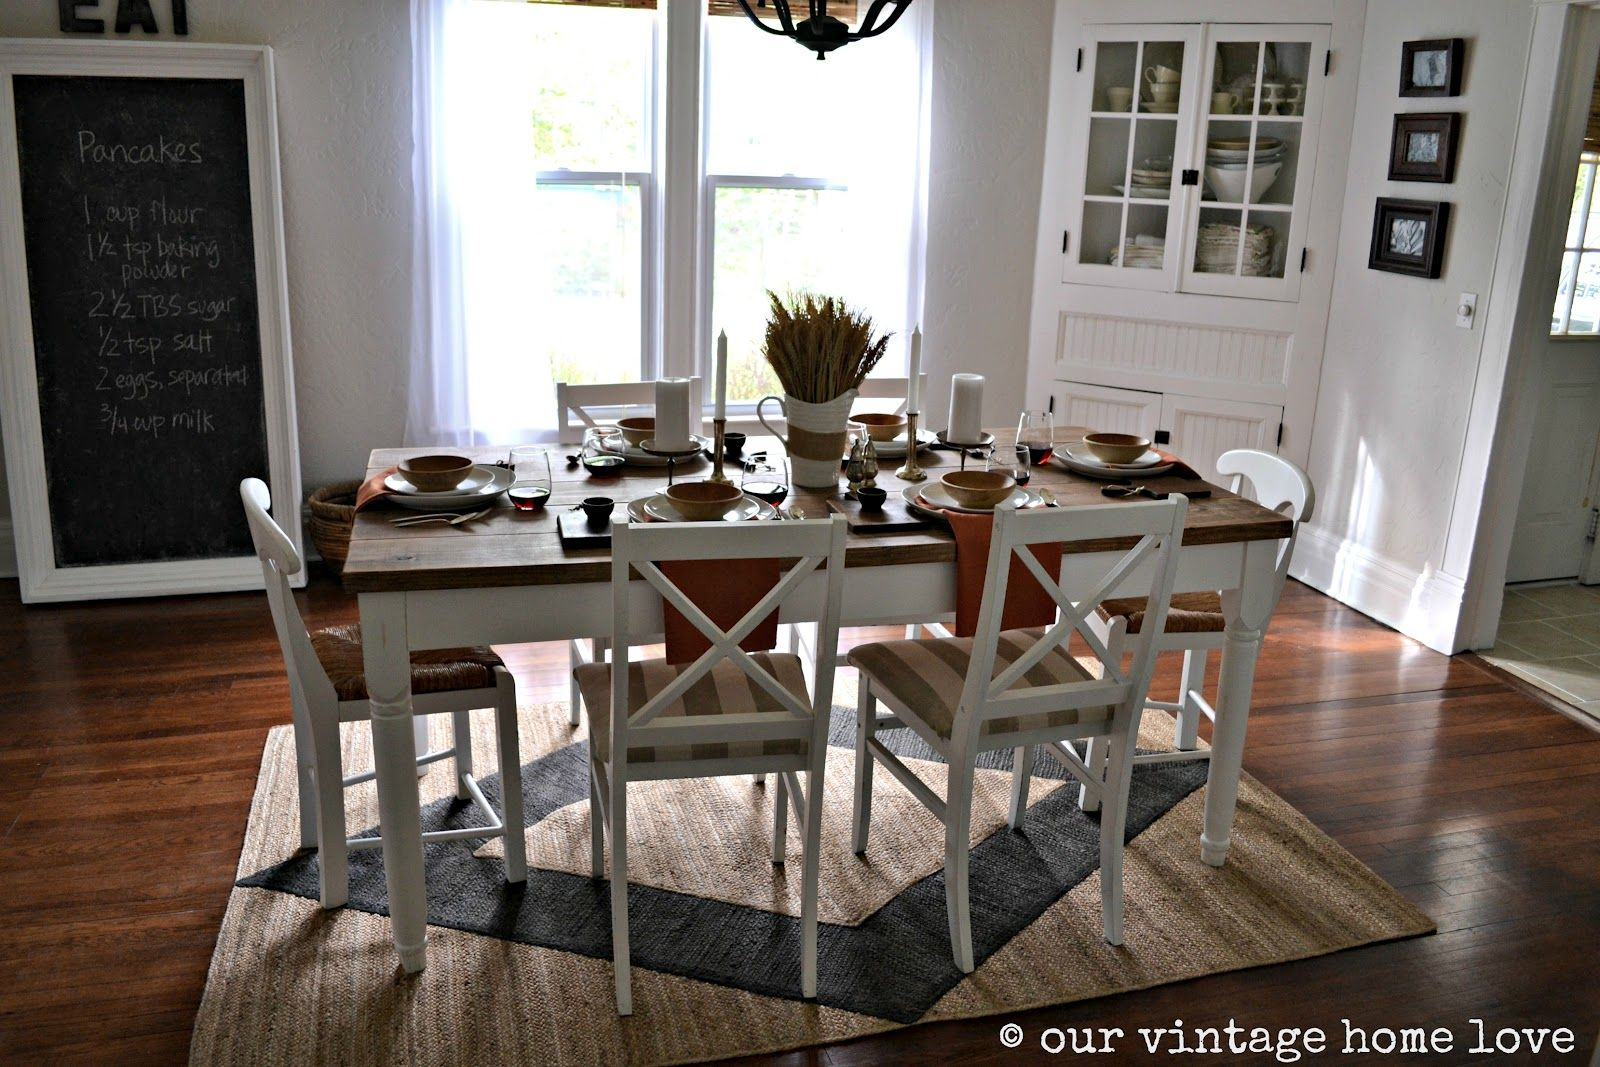 Take A Look To Some Wood And White Dining Room Decor Ideas Exclusivedesign Interiordesigns Rug Under Dining Table Dining Room Contemporary Dining Table Rug